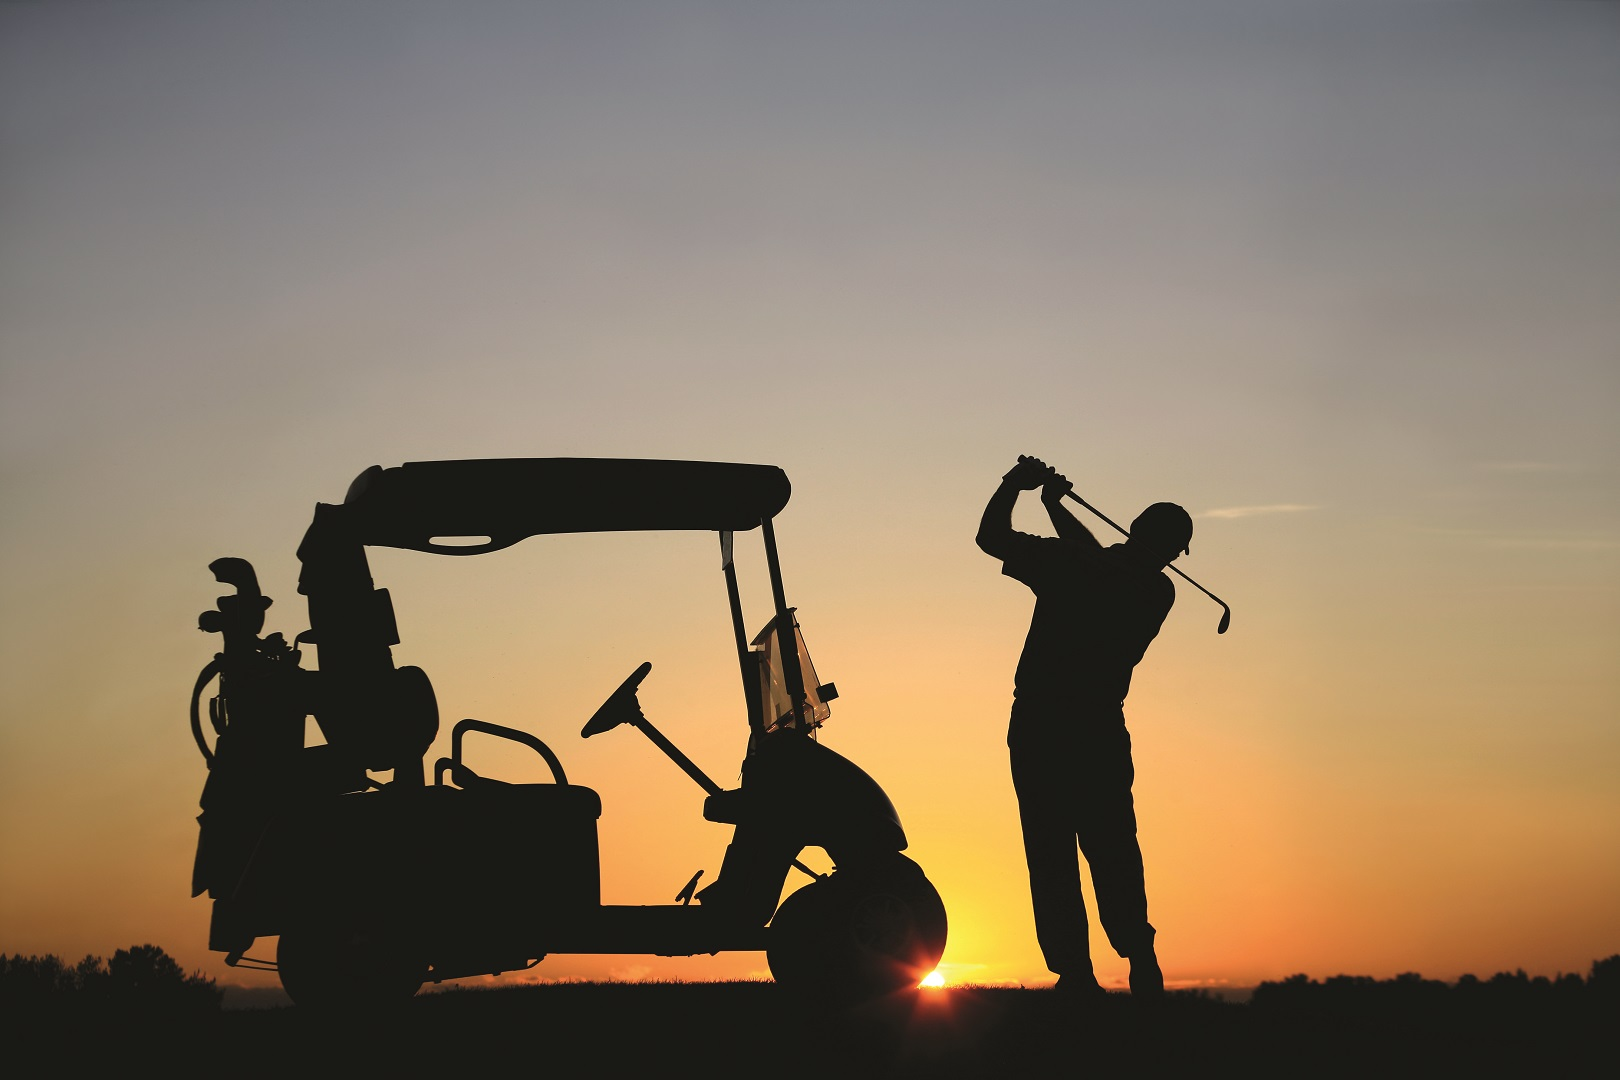 A silhouette of a senior male Caucasian golfer at sunset with powercart. Golfer is demonstrating great form and balance as he swings into a finish position. Image can be used for teaching, golf academy, lessons, senior, retirement, golf resort, golf vacation, back view, athlete, leisure, sports, weekend activities, unrecognizable people, swinging, instruction, and golf cart communities.